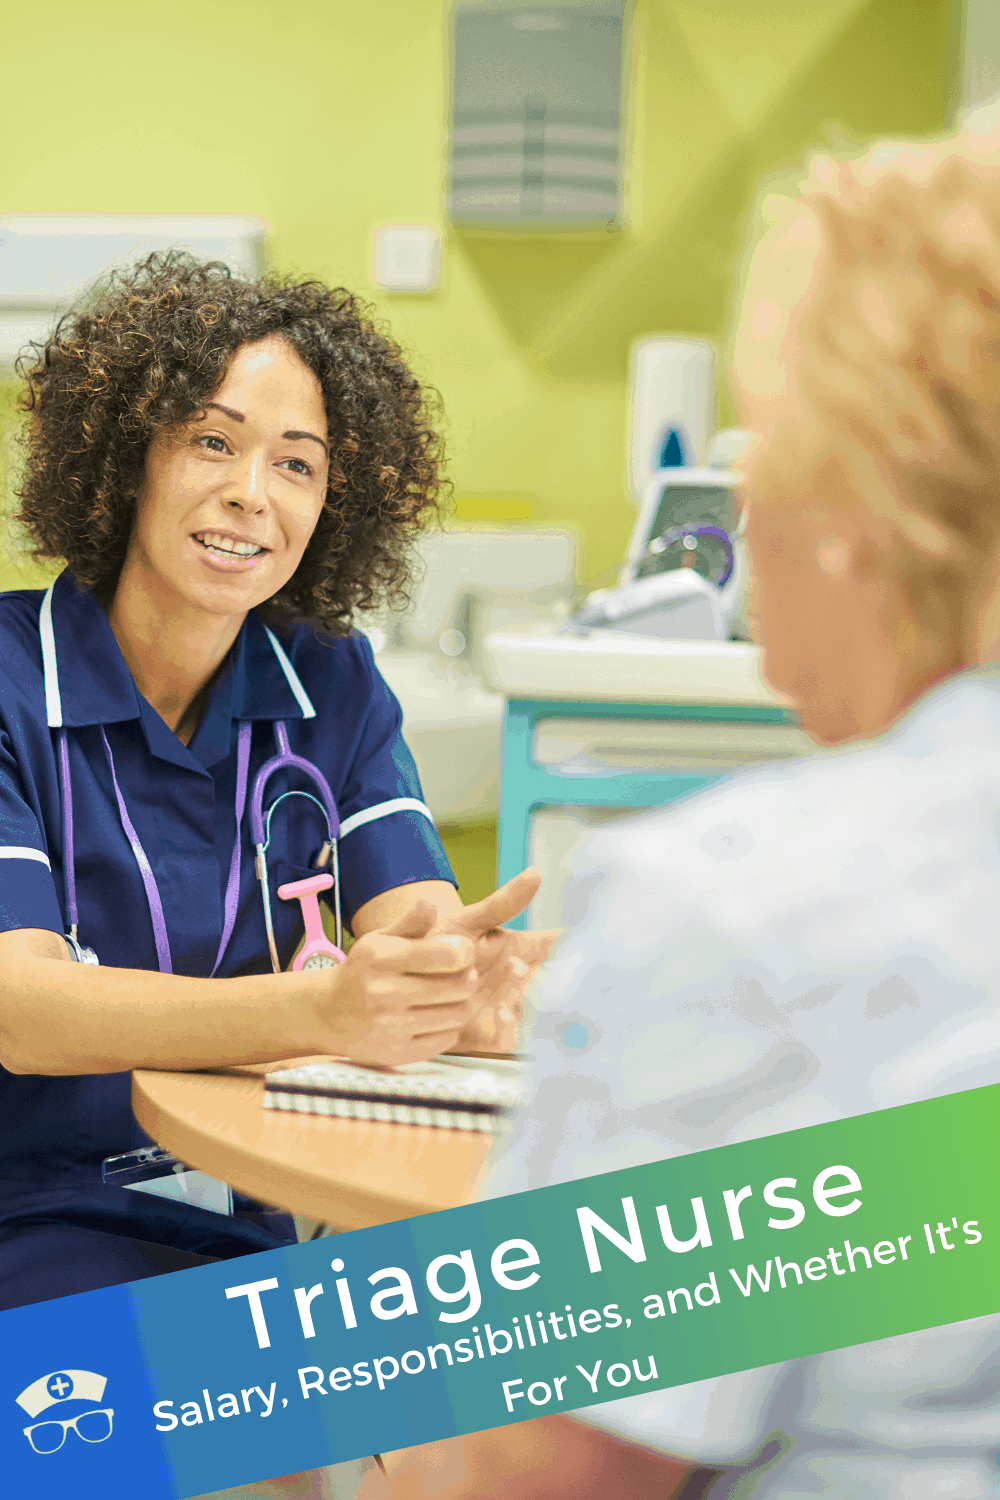 Triage Nurse Salary, Responsibilities, and Whether It's For You. Is being a telephone triage nurse the job for you? Learn about how much a triage nurse makes, what they do, and how to qualify for this job. #thenerdynurse #nurses #nurse #triage #triagenurse #nursingspecialties #nursespecialties #specialties